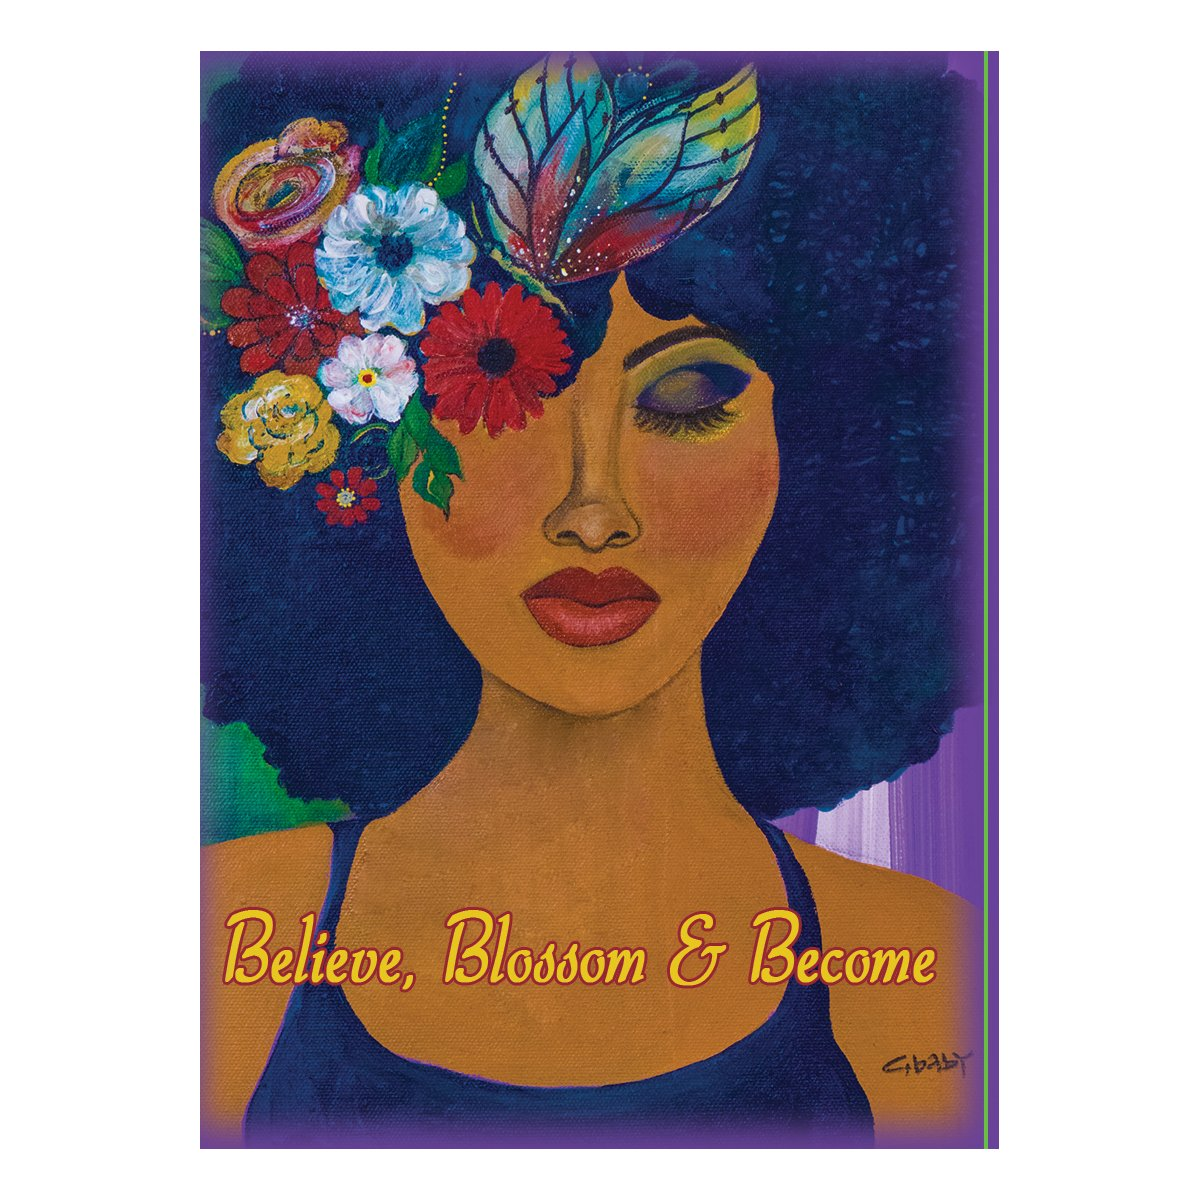 Believe, Blossom & Become: Gbaby Magnet by Shades of Color